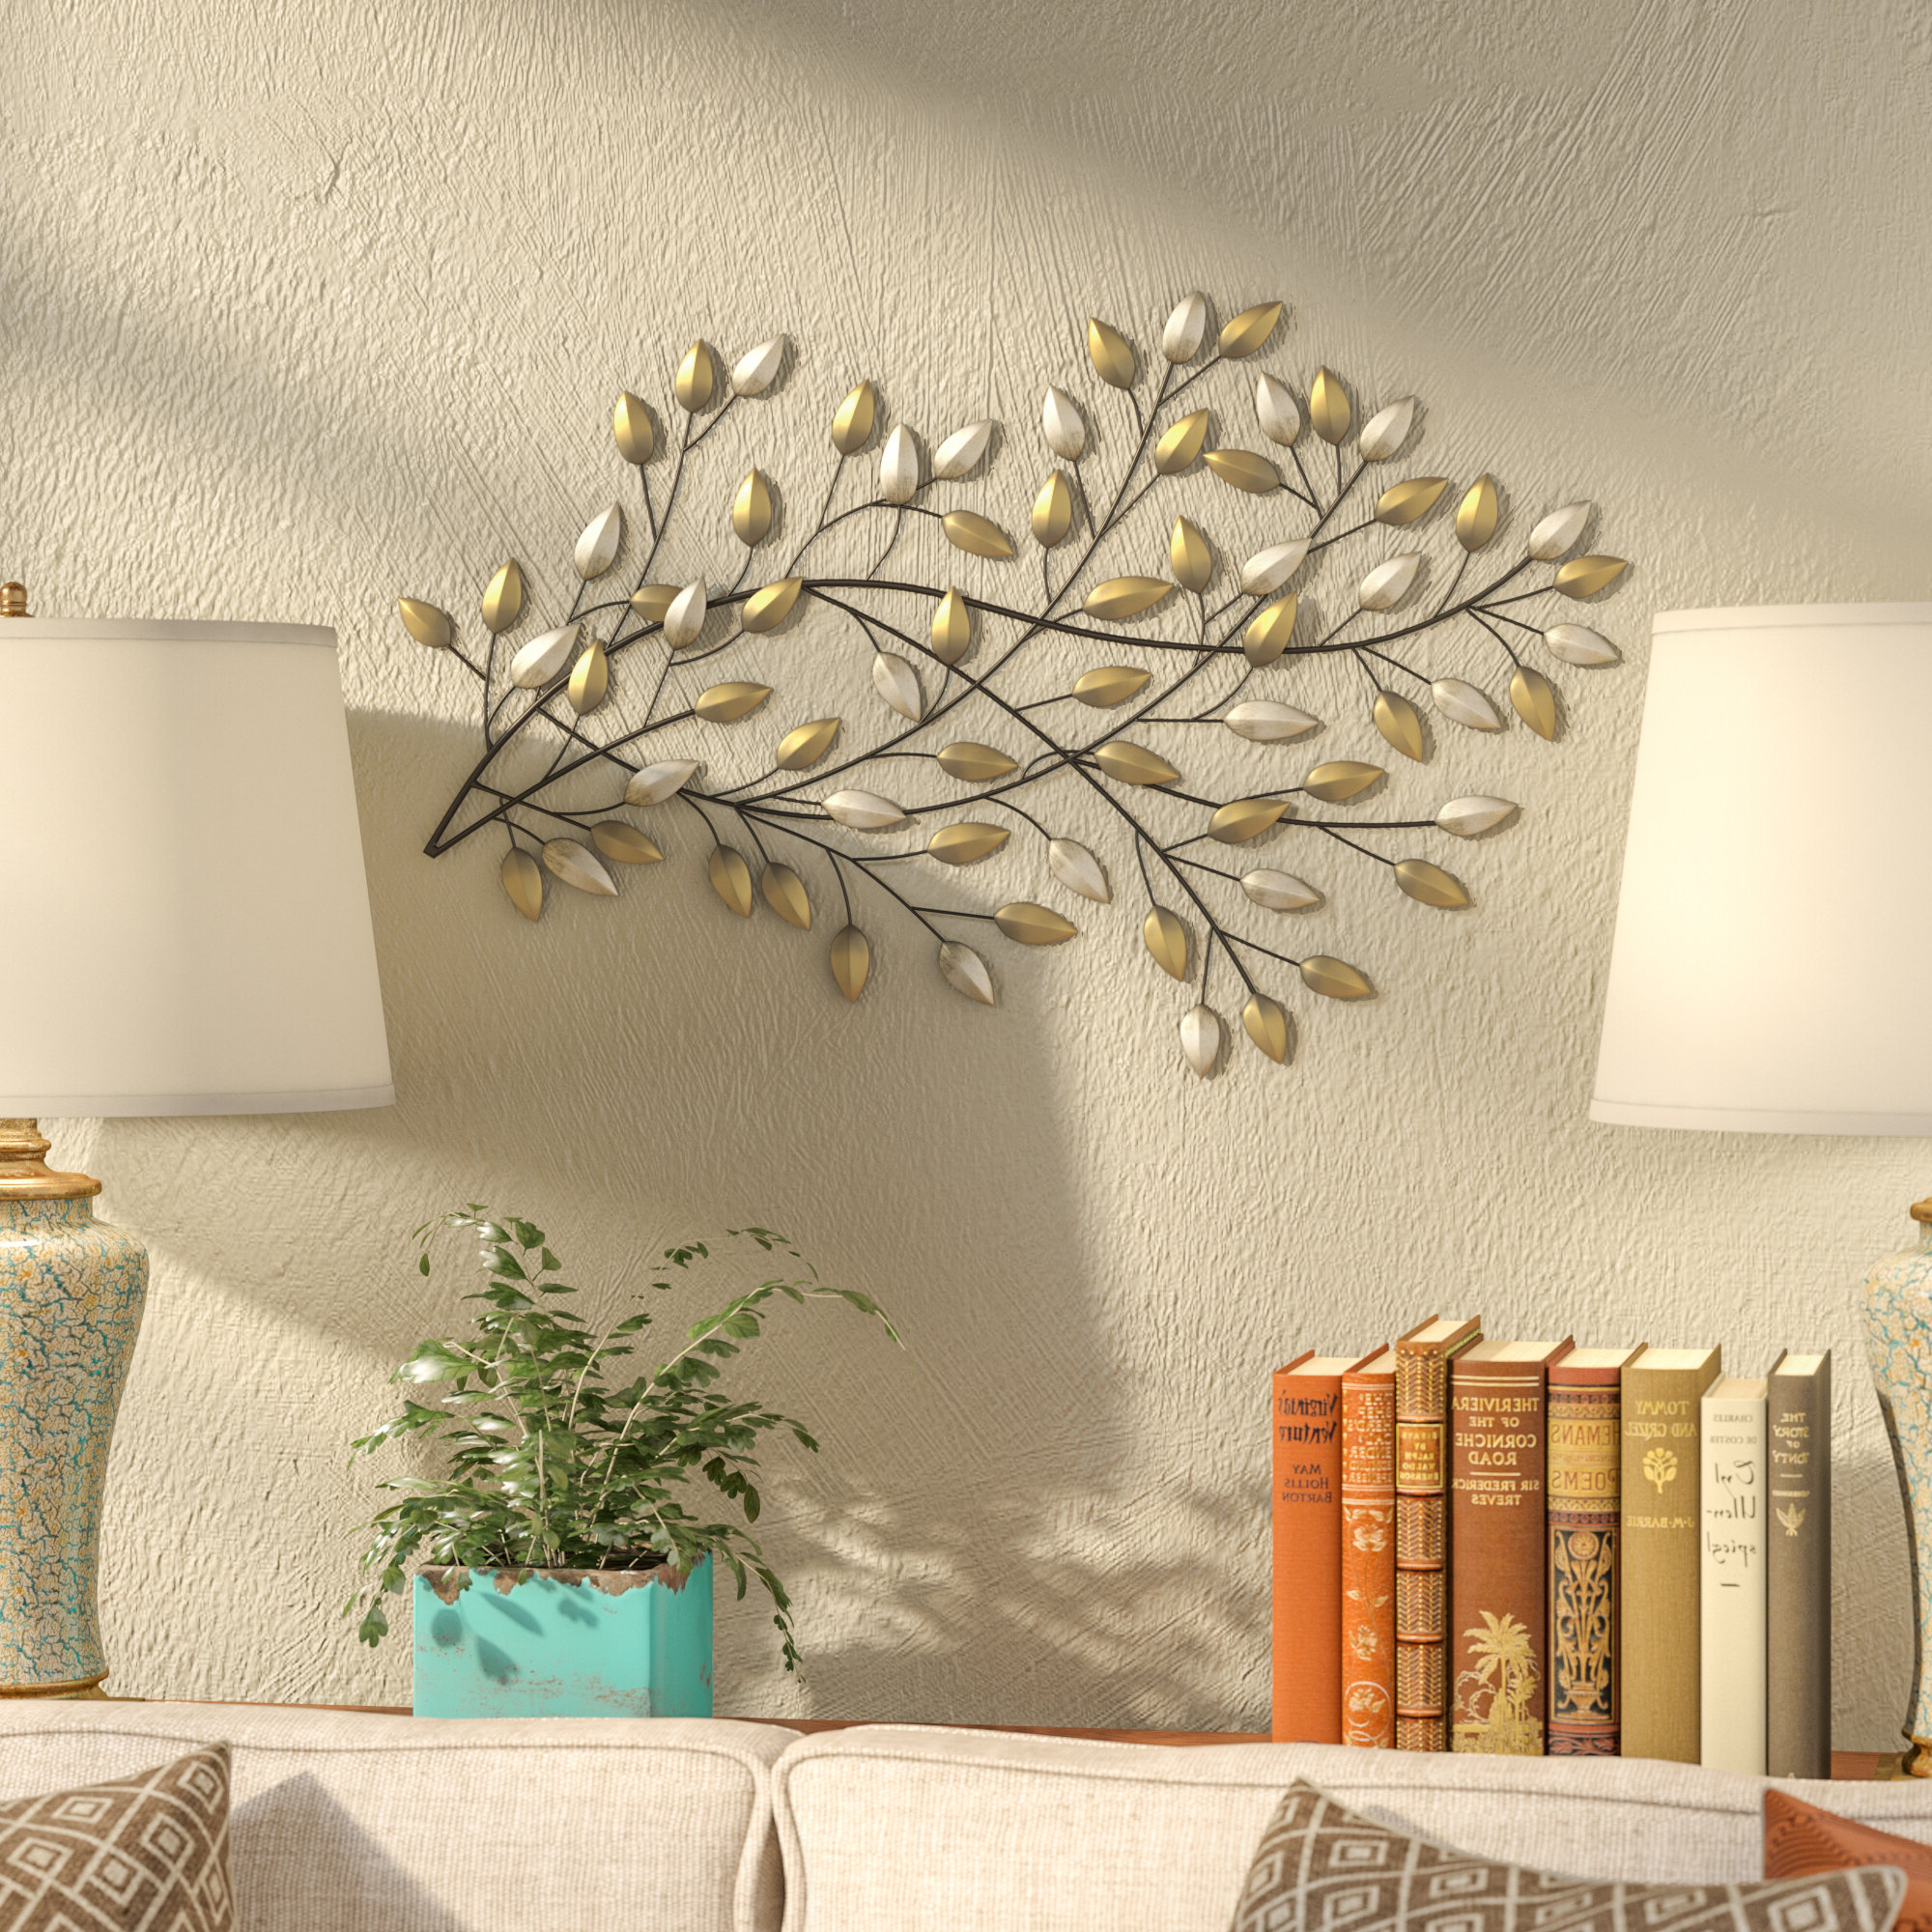 Recent Fleur De Lis Living Blowing Leaves Wall Décor & Reviews With Blowing Leaves Wall Décor (View 5 of 20)